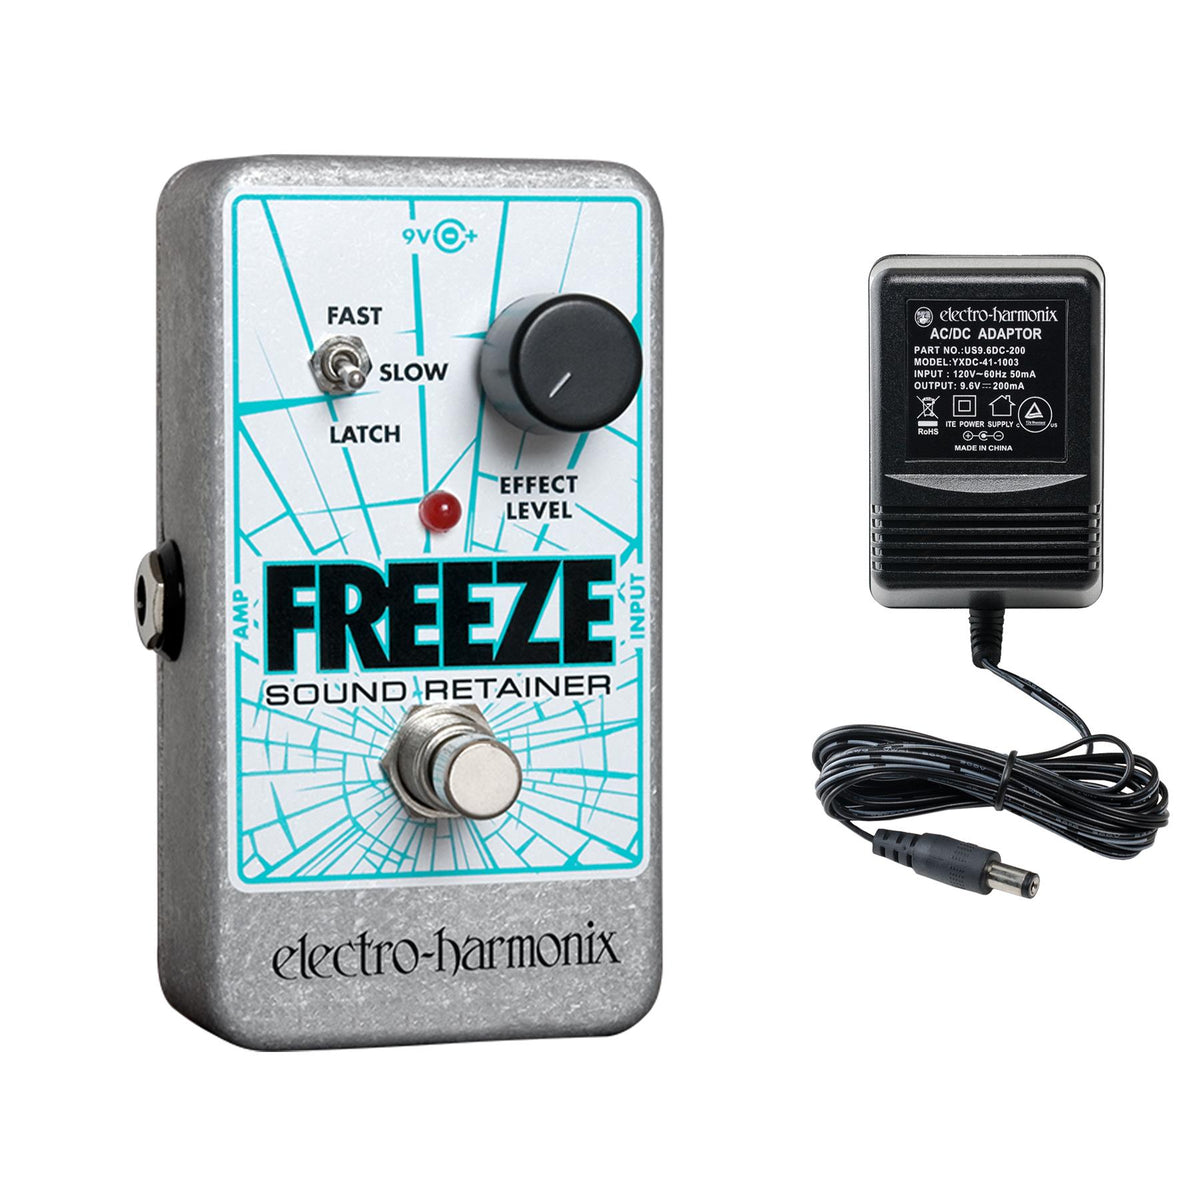 Electro-Harmonix Freeze Infinite Sustain Guitar Effects Pedal with 9.6V Power Supply